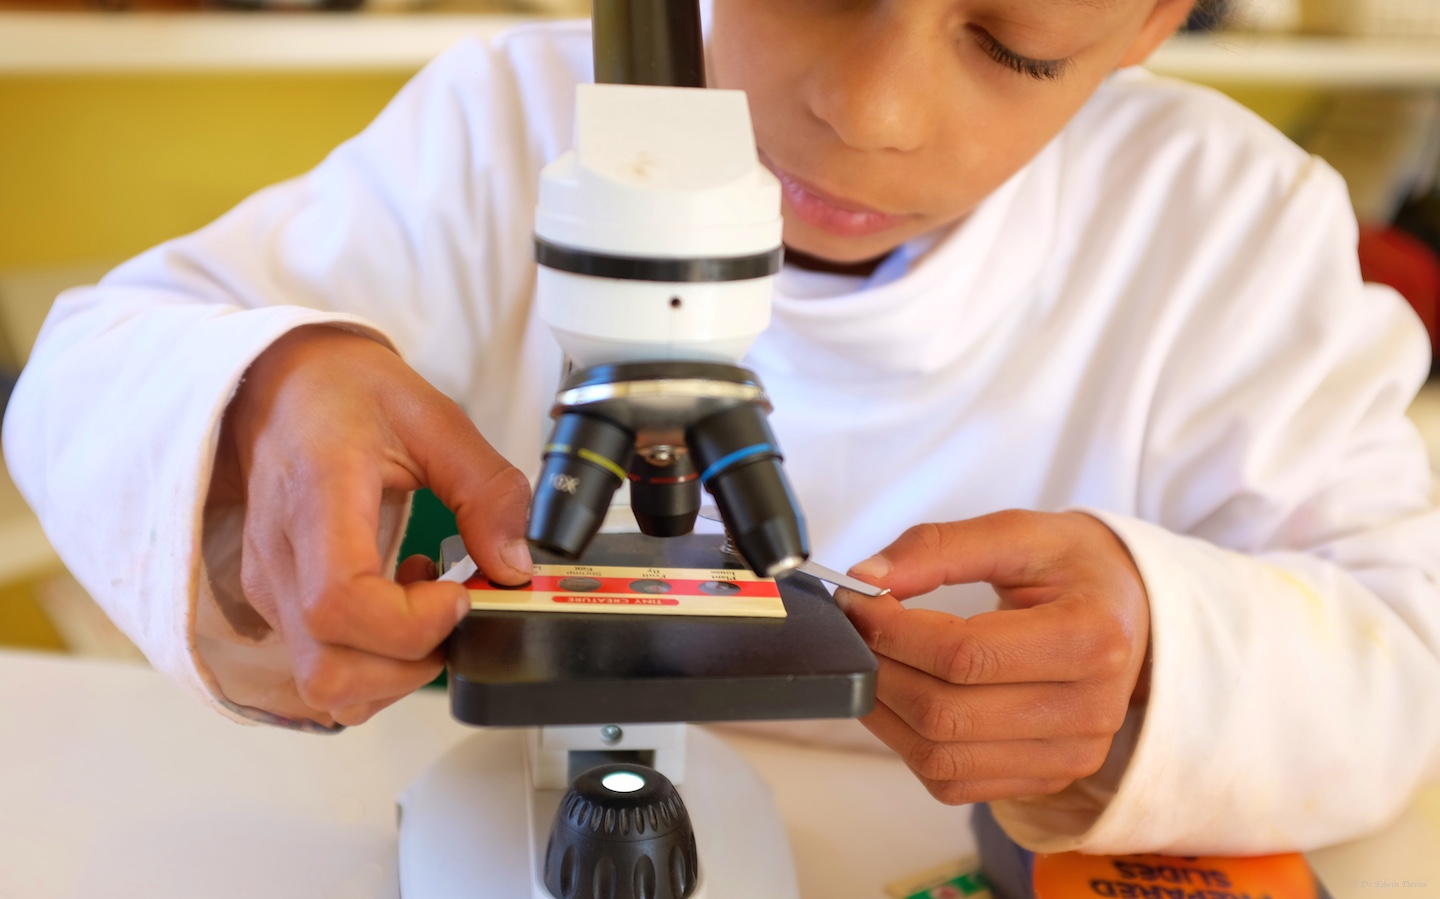 Seeing the microscopic world for the first time